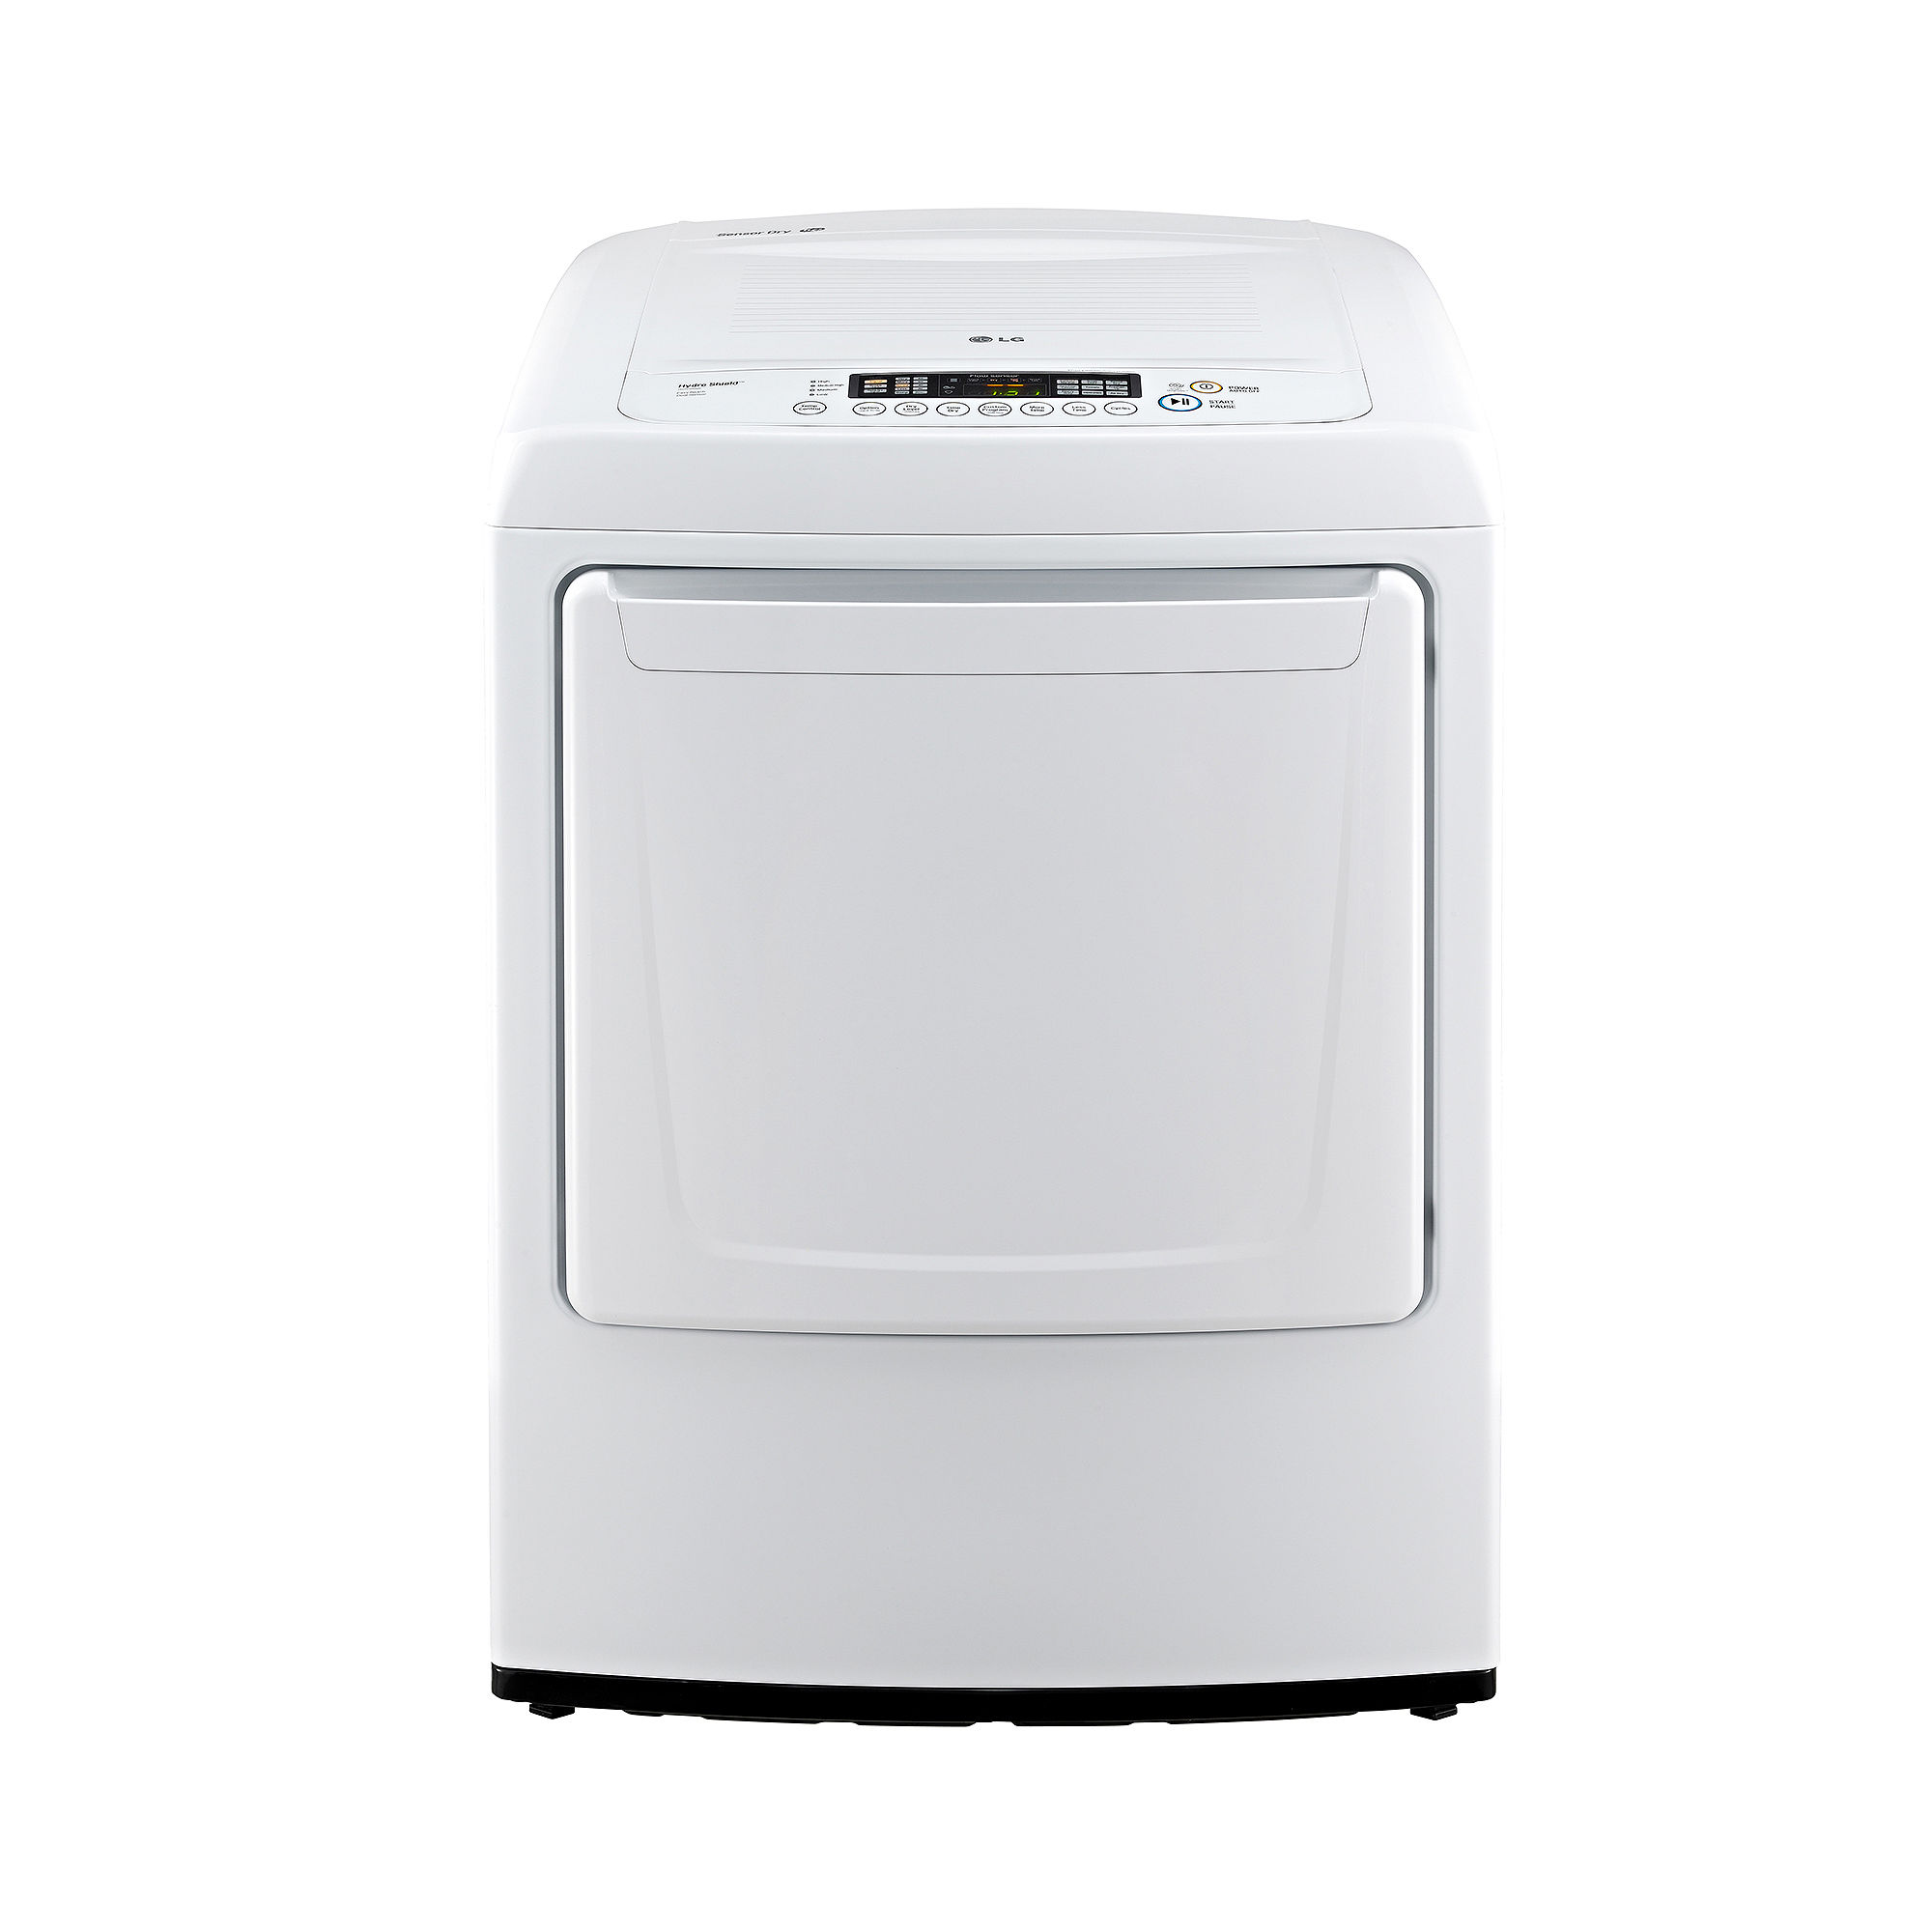 LG 7.3 cu. ft. Ultra-Large Capacity High-Efficiency Electric Dryer with Front Control Design - DLE1001W